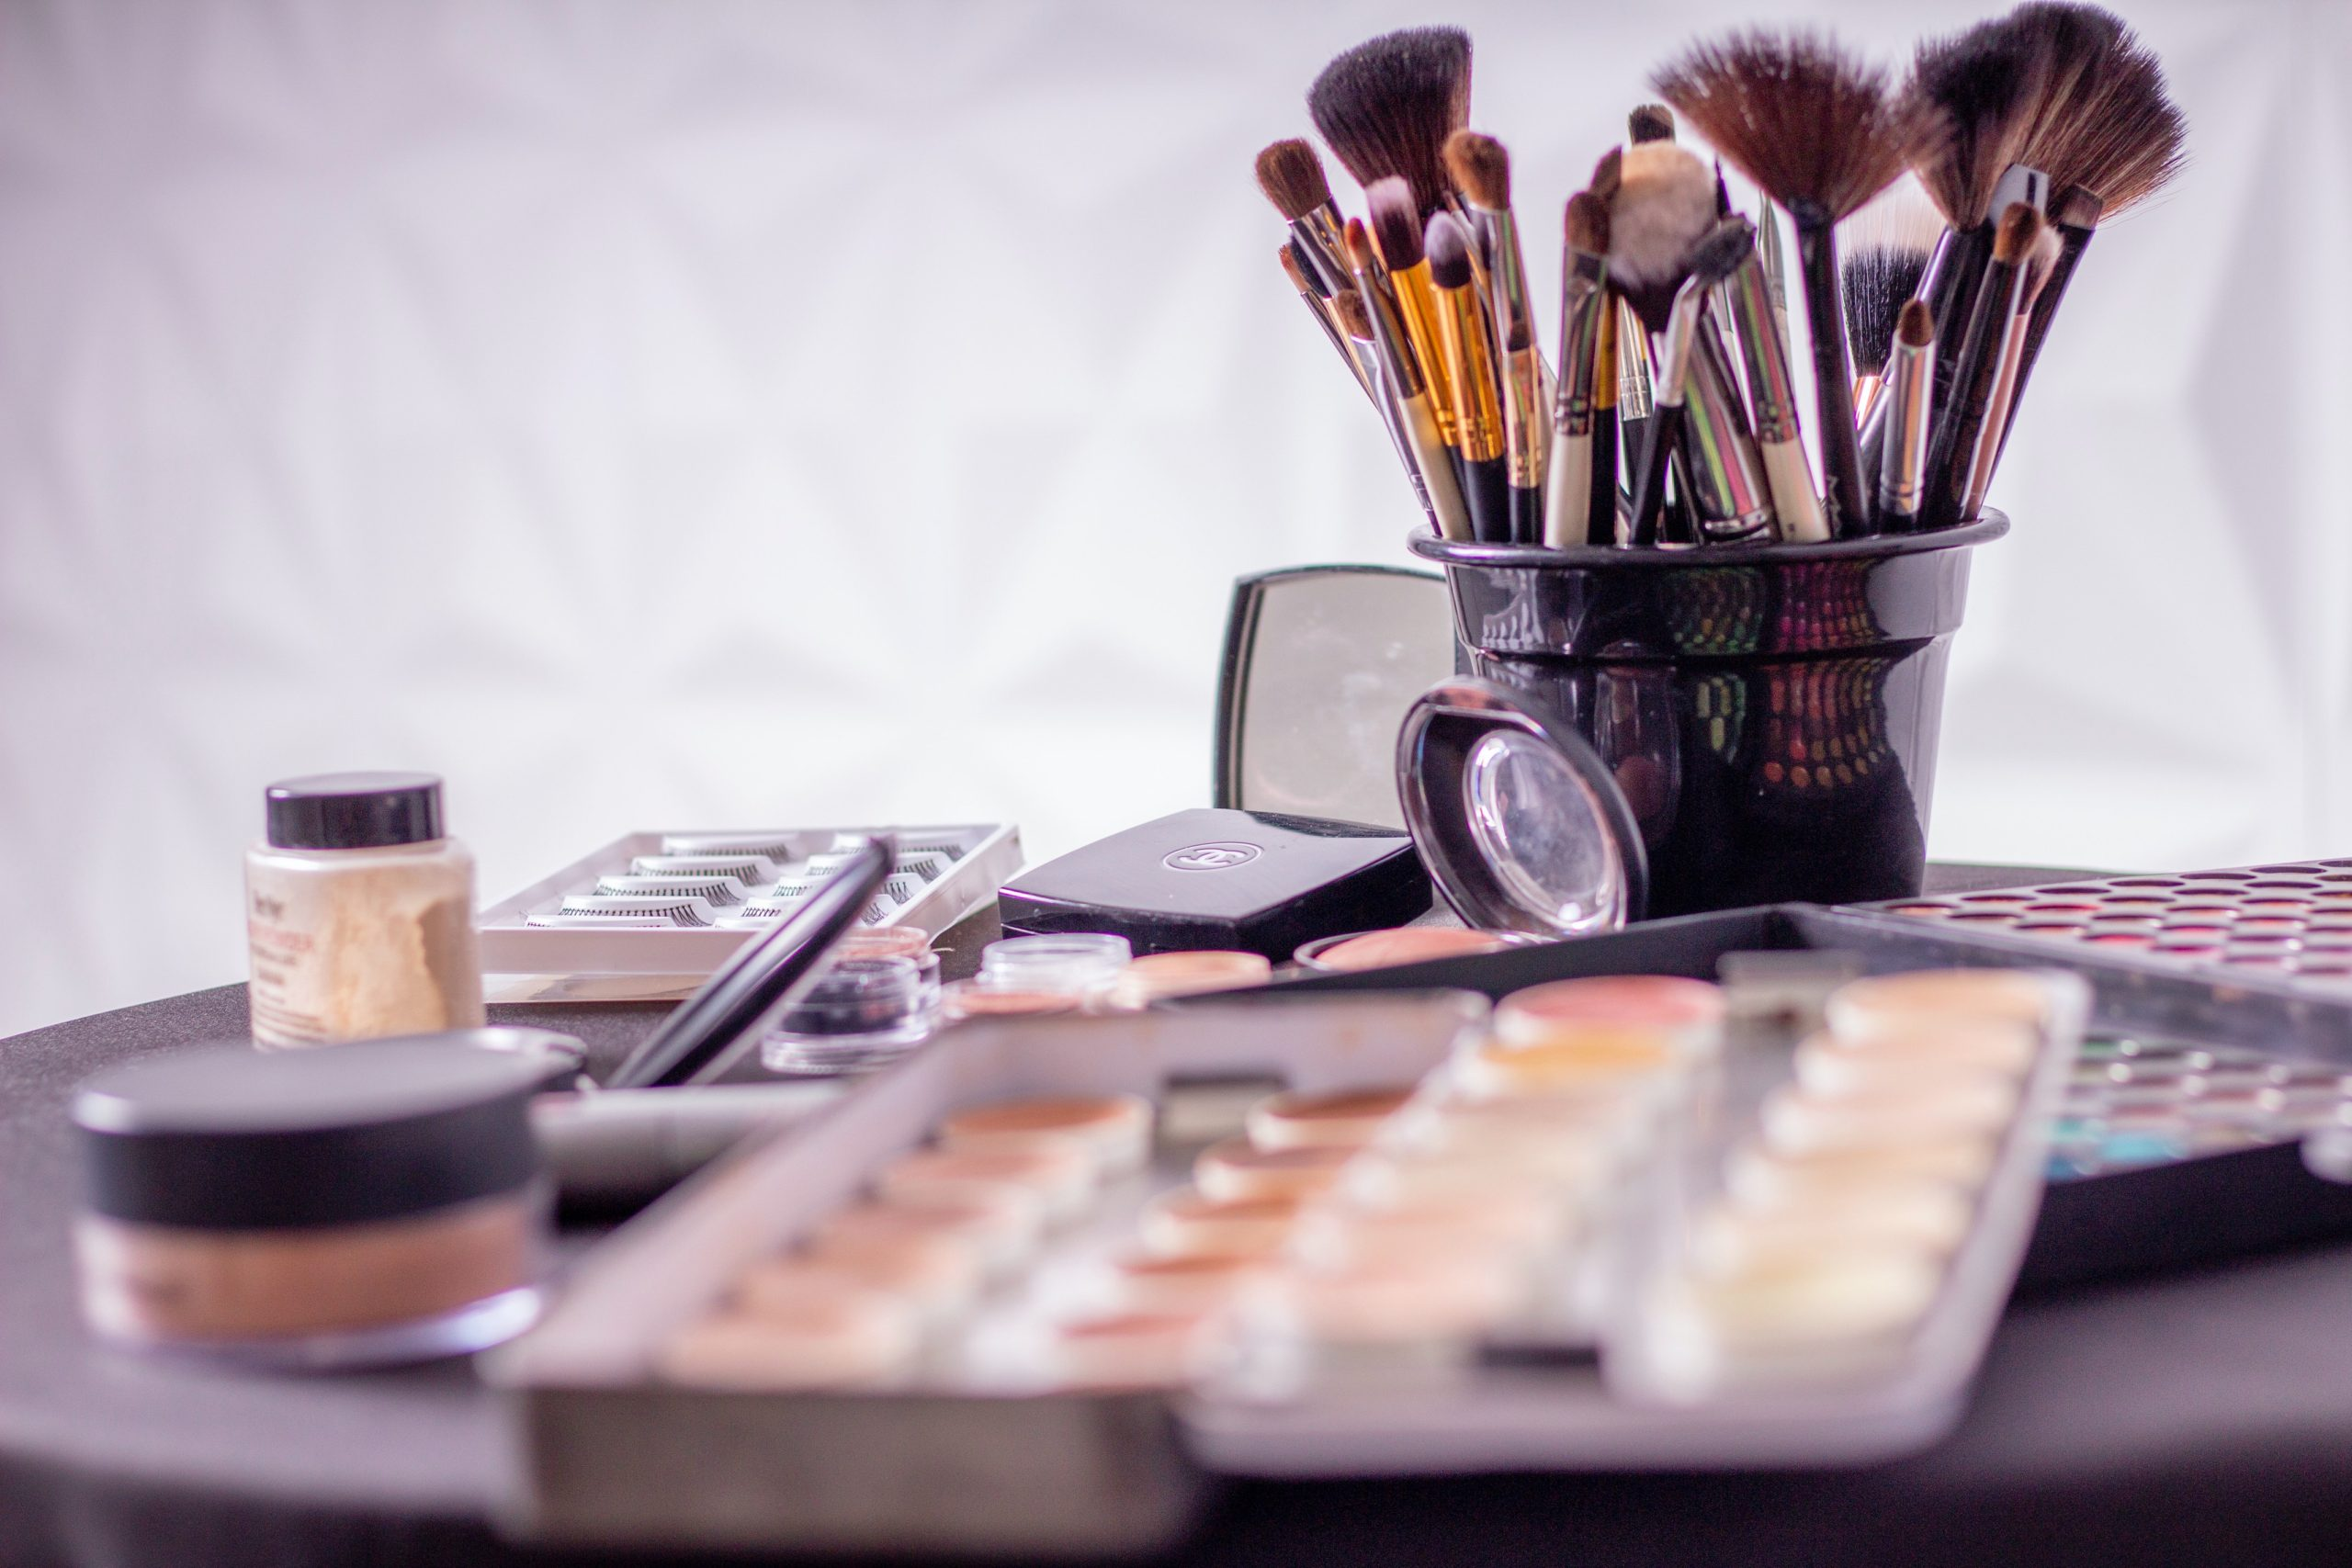 Wedding Makeup – Beauty tips every bride needs to know